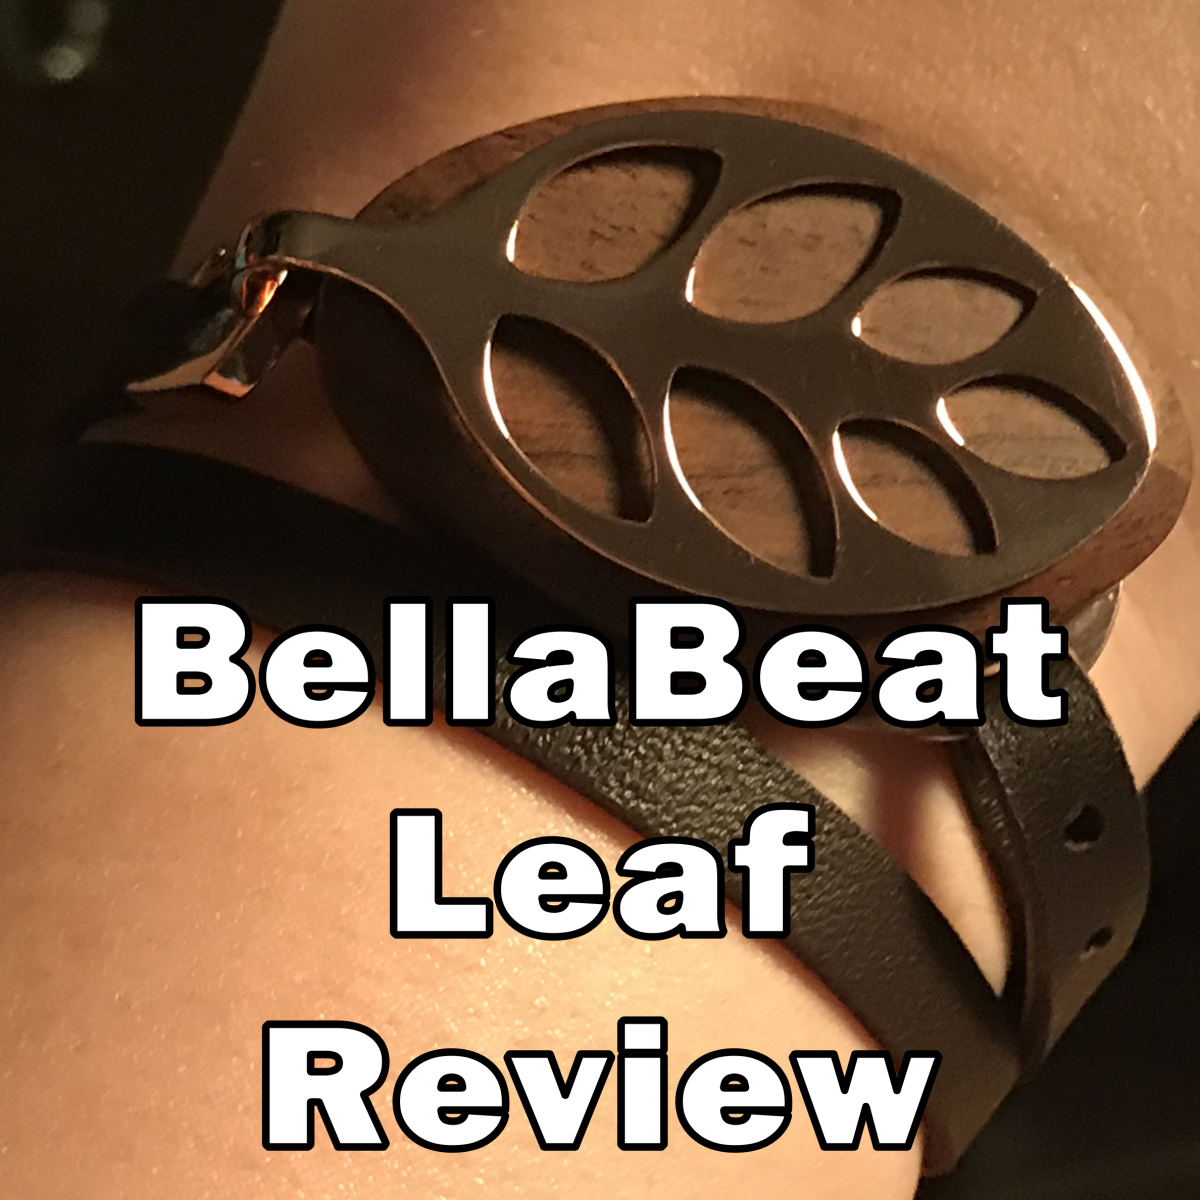 BellaBeat Leaf Review: Getting Started With the Leaf Fitness and Health Tracker